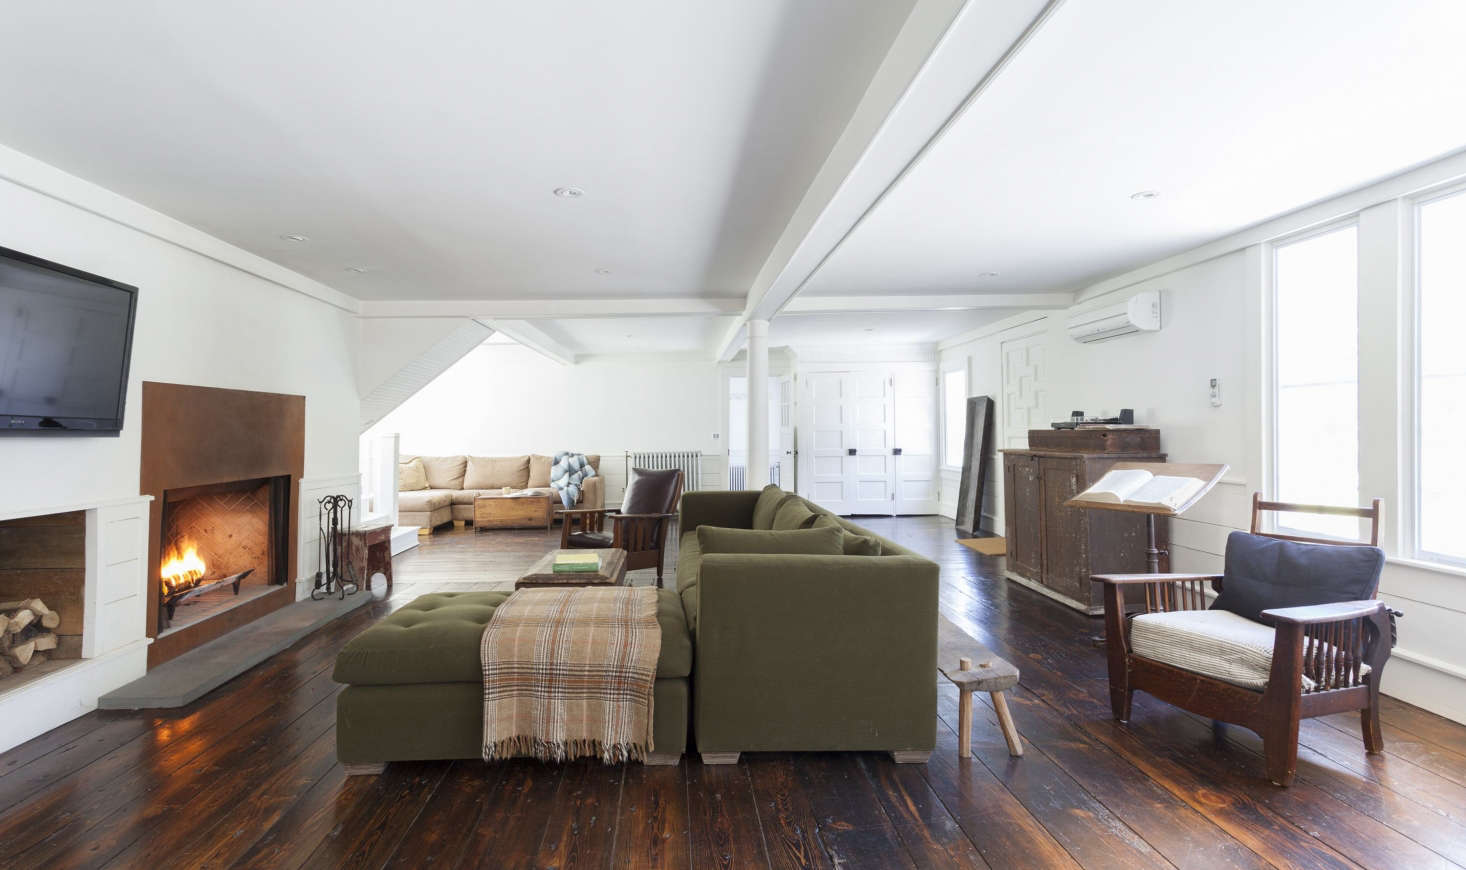 "The open-plan living room/family room/dining room has its own steel-front fireplace and original wide-plank floors. The wainscoting and ceiling coffers were built from pine trees felled and milled on the property. The living room is painted in Benjamin Moore's Decorator's White. ""My trifecta is White Dove, Decorator's White, and Super White,"" says Givone about his favorite Benjamin Moore paints."